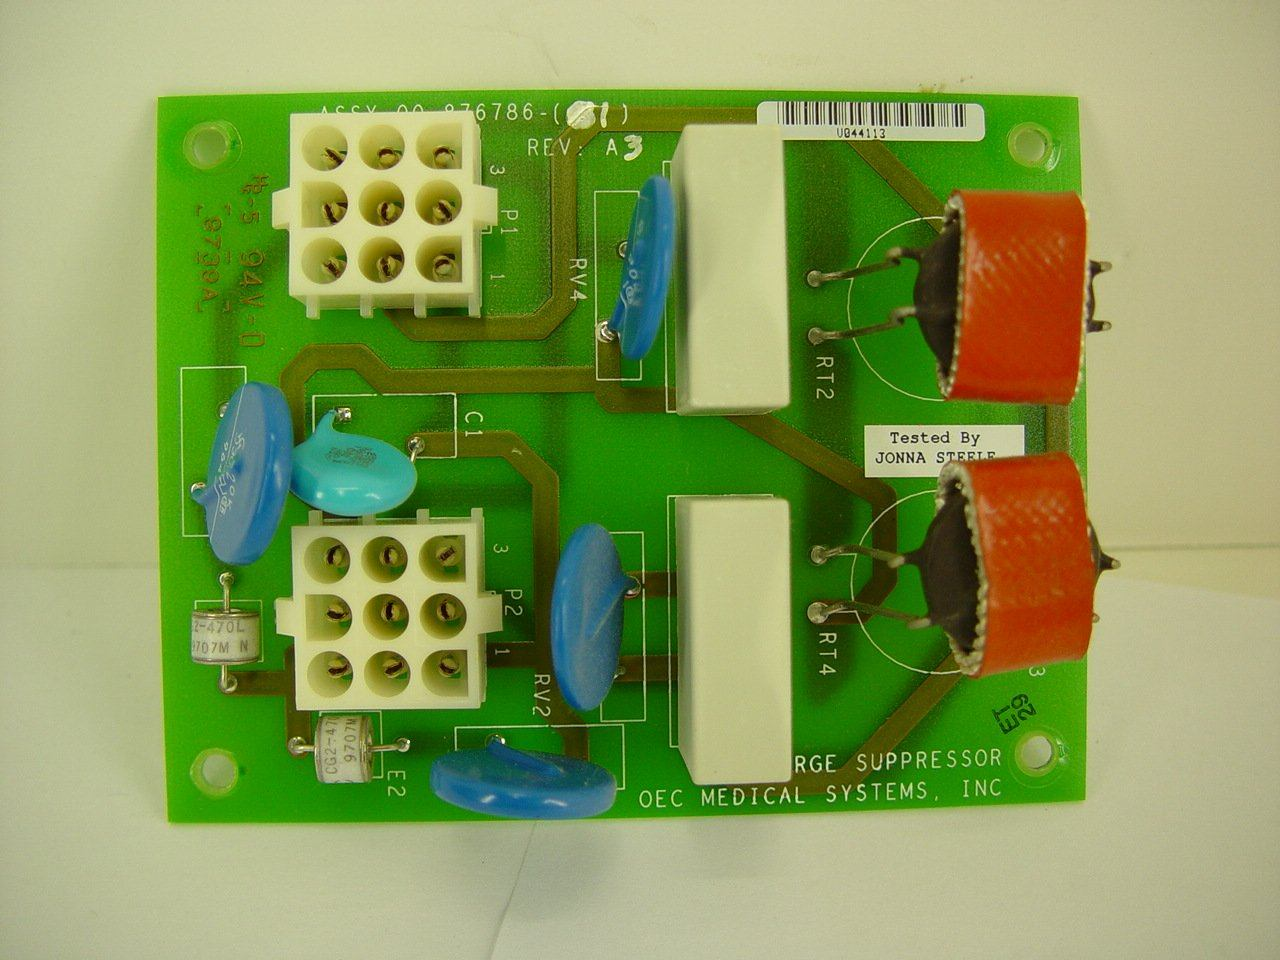 PCB Boards - OEC-9600 SURGE SUPPRESSOR (00-876786-01)